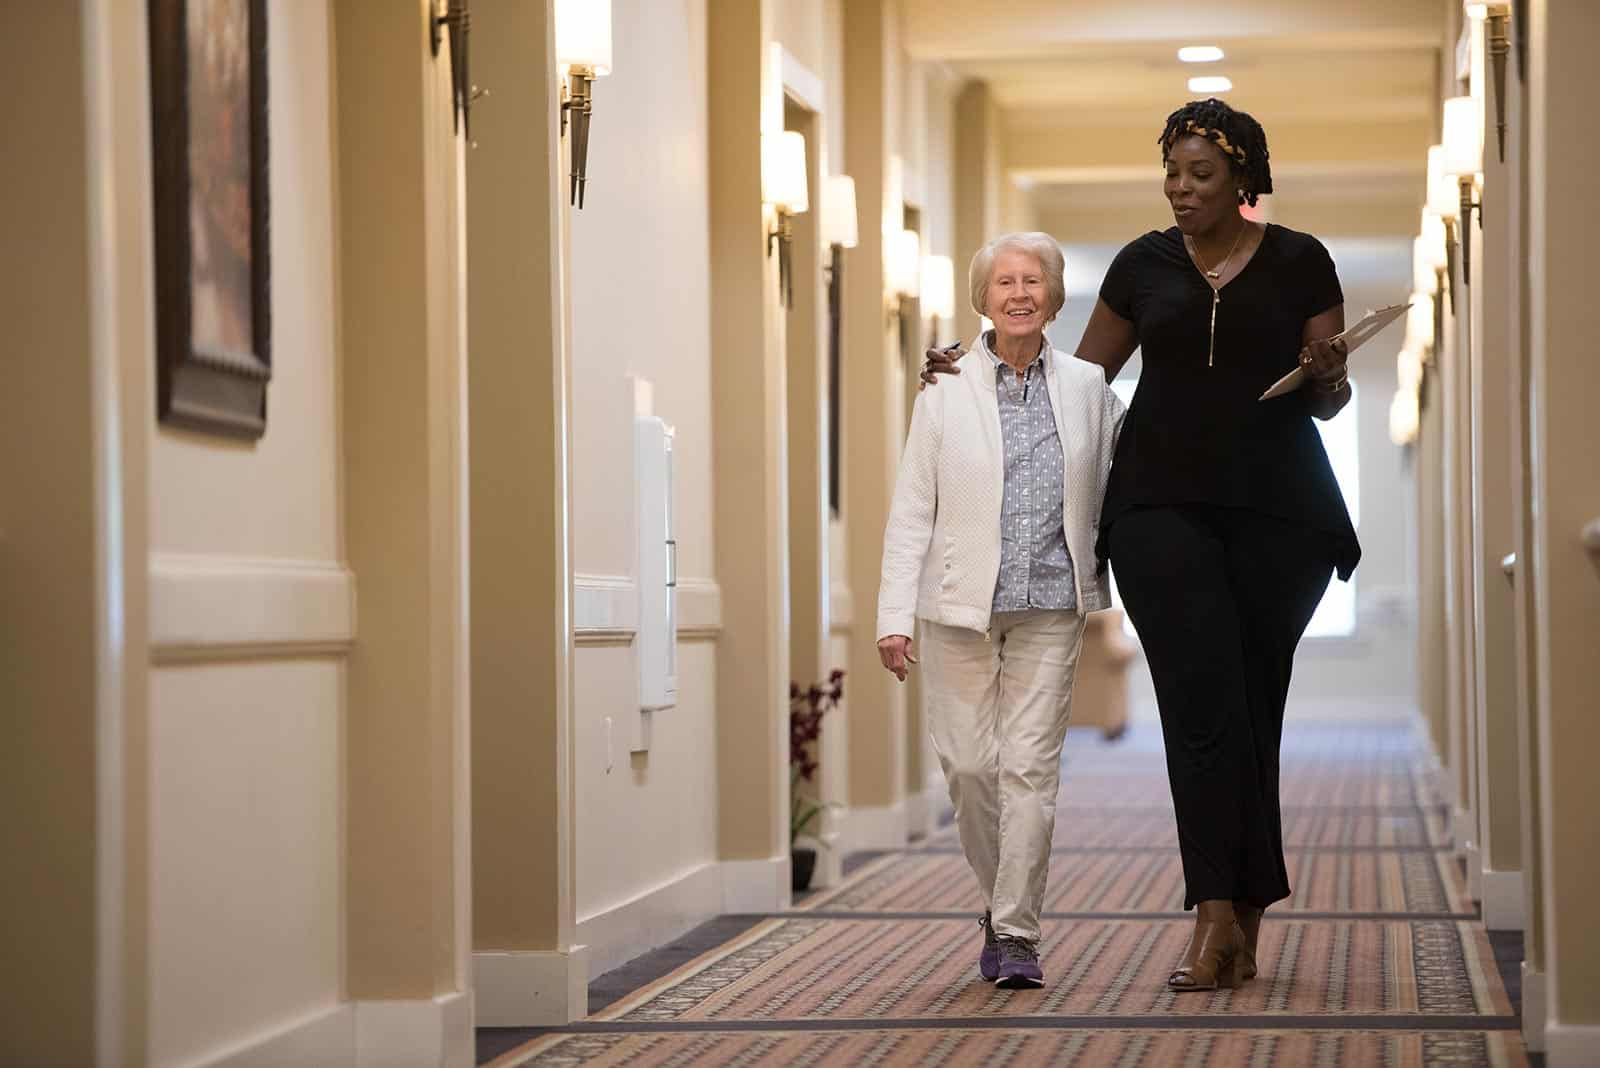 Staff member walking with senior woman